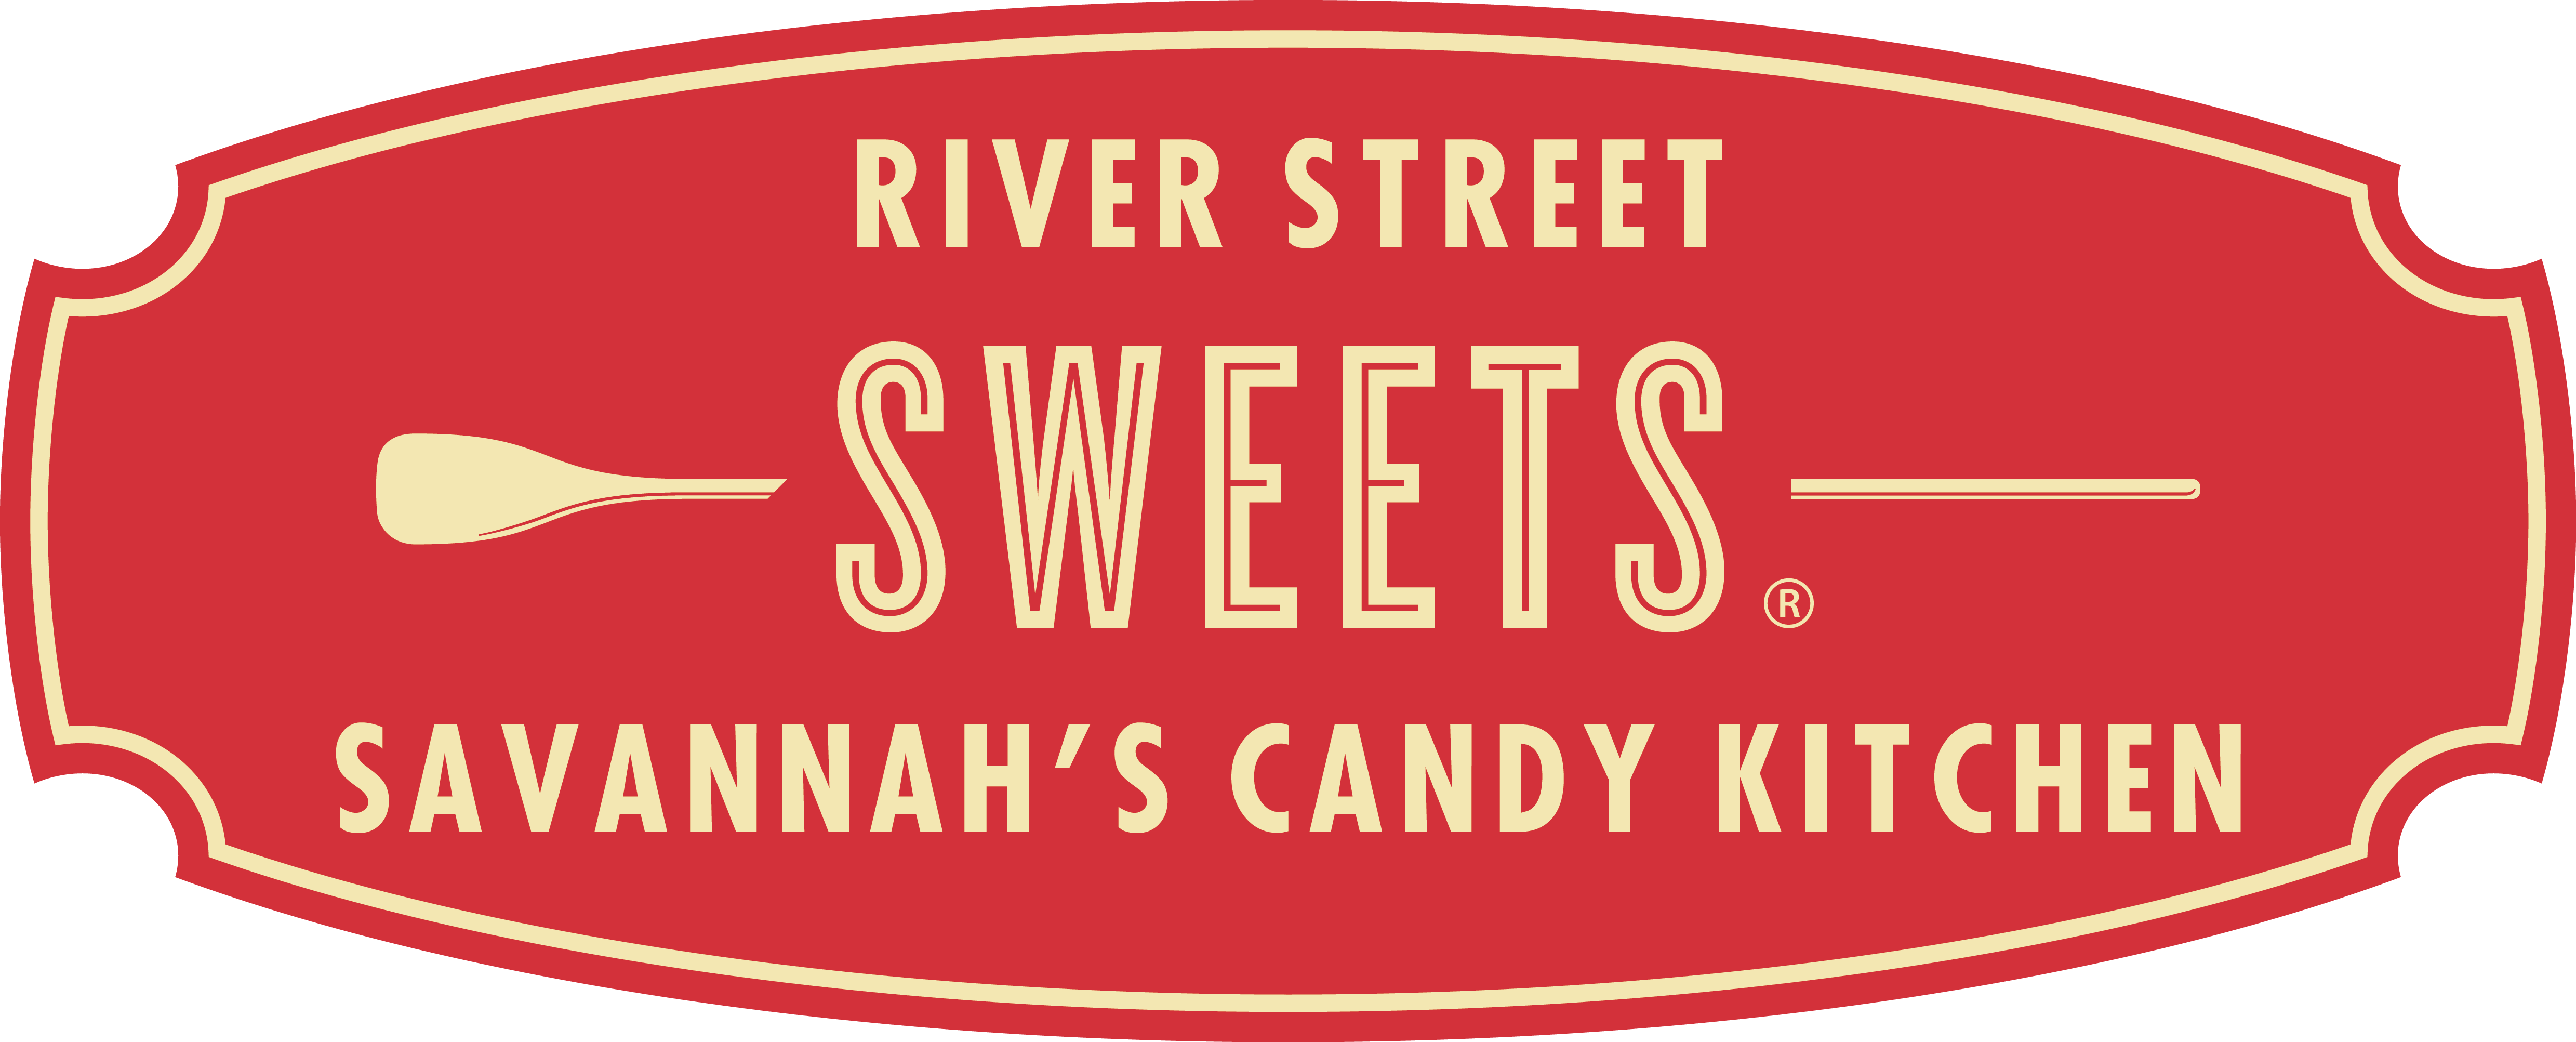 River Street Sweets Savannah's Candy Kitchen franchise logo